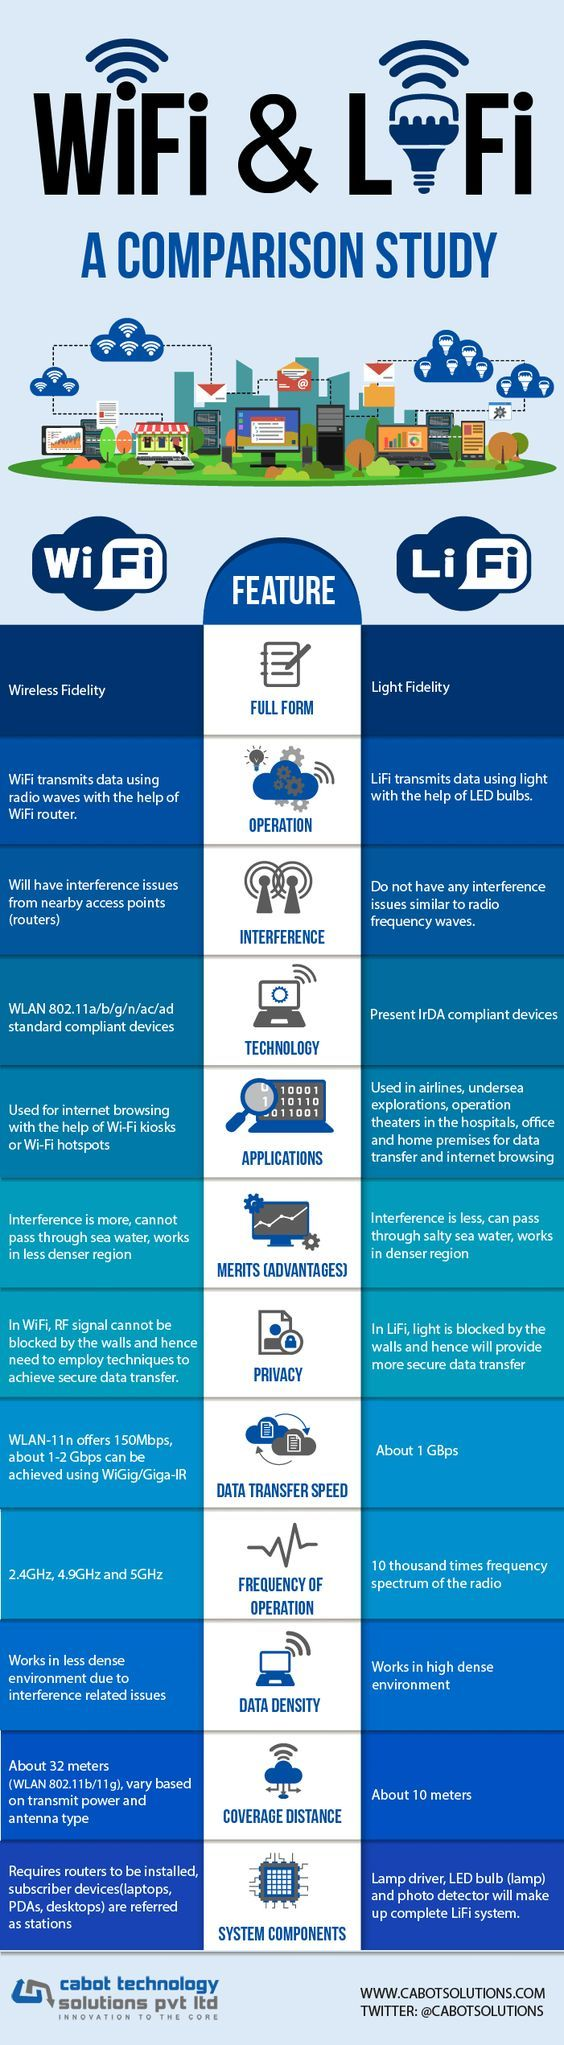 WiFi and LiFi – A Comparison Study   Infographic by Cabot Technology Solutions